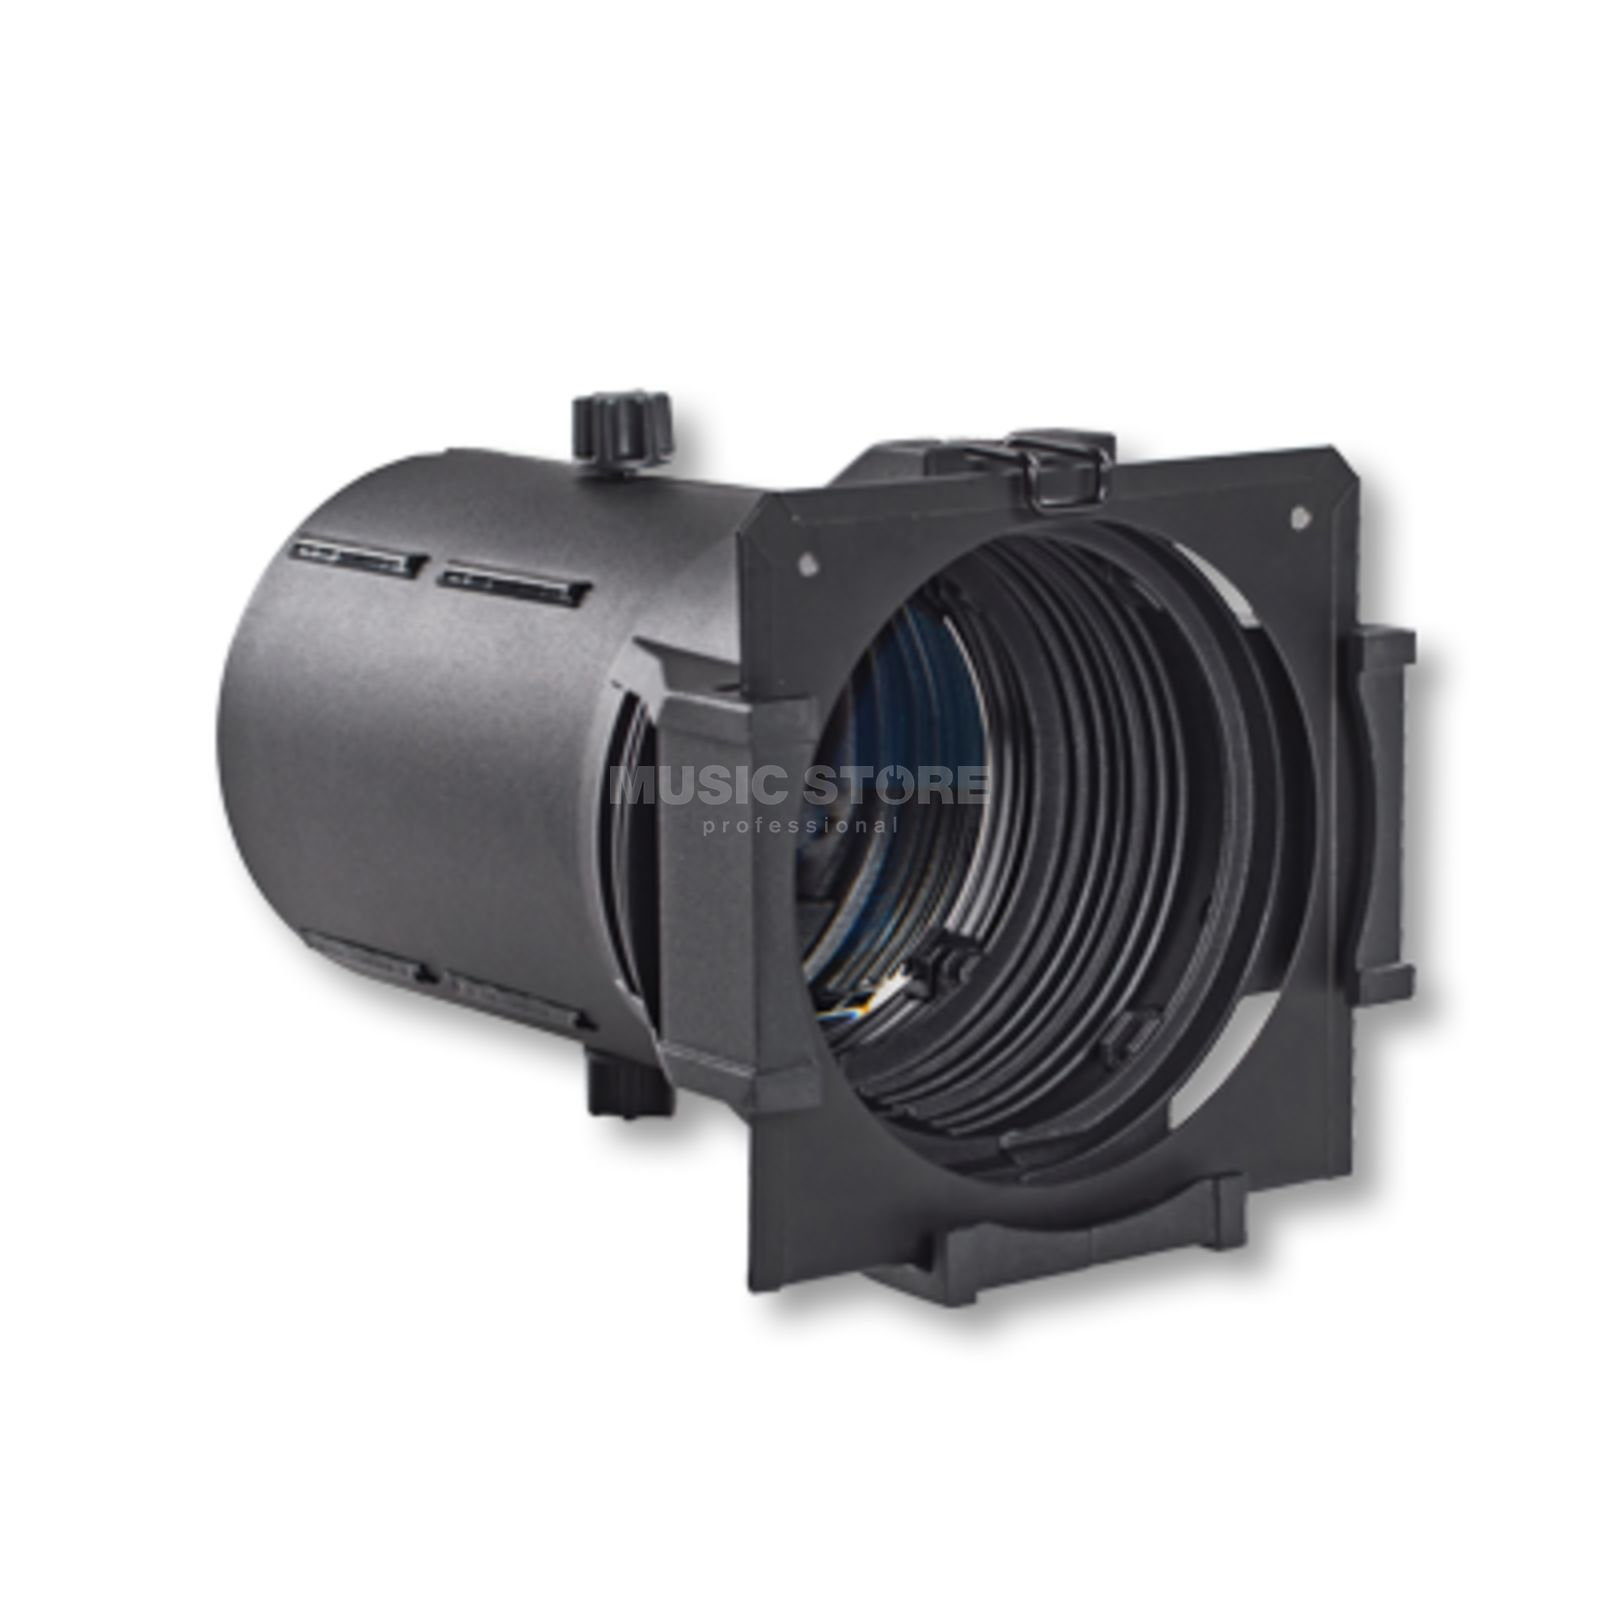 Expolite LED Profile 600 26° Lens Barrel Product Image